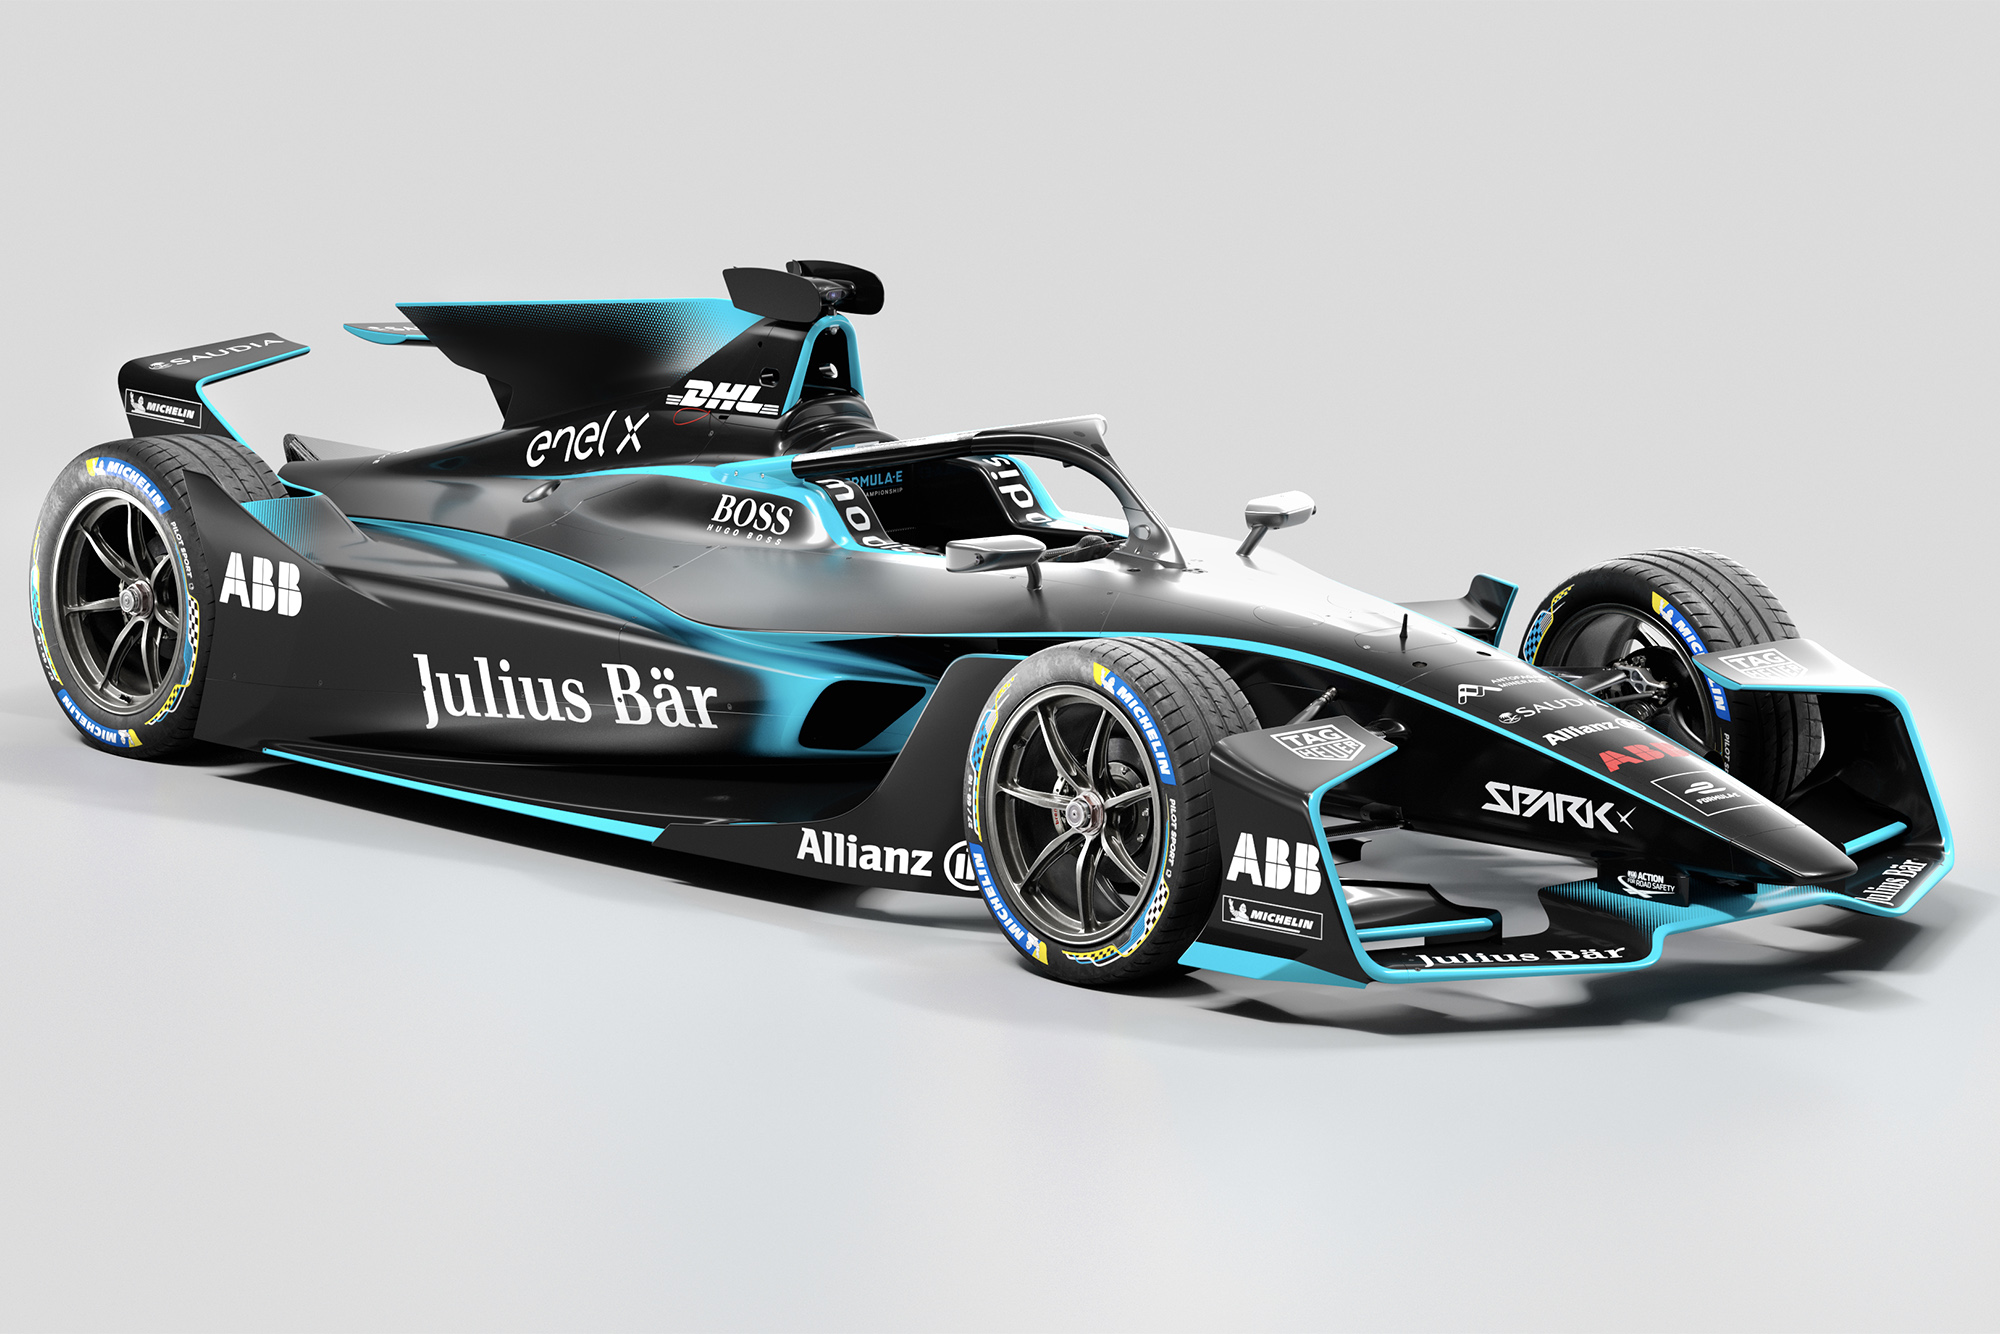 Formula E unveils new Gen 2 EVO car for 2020/21 season